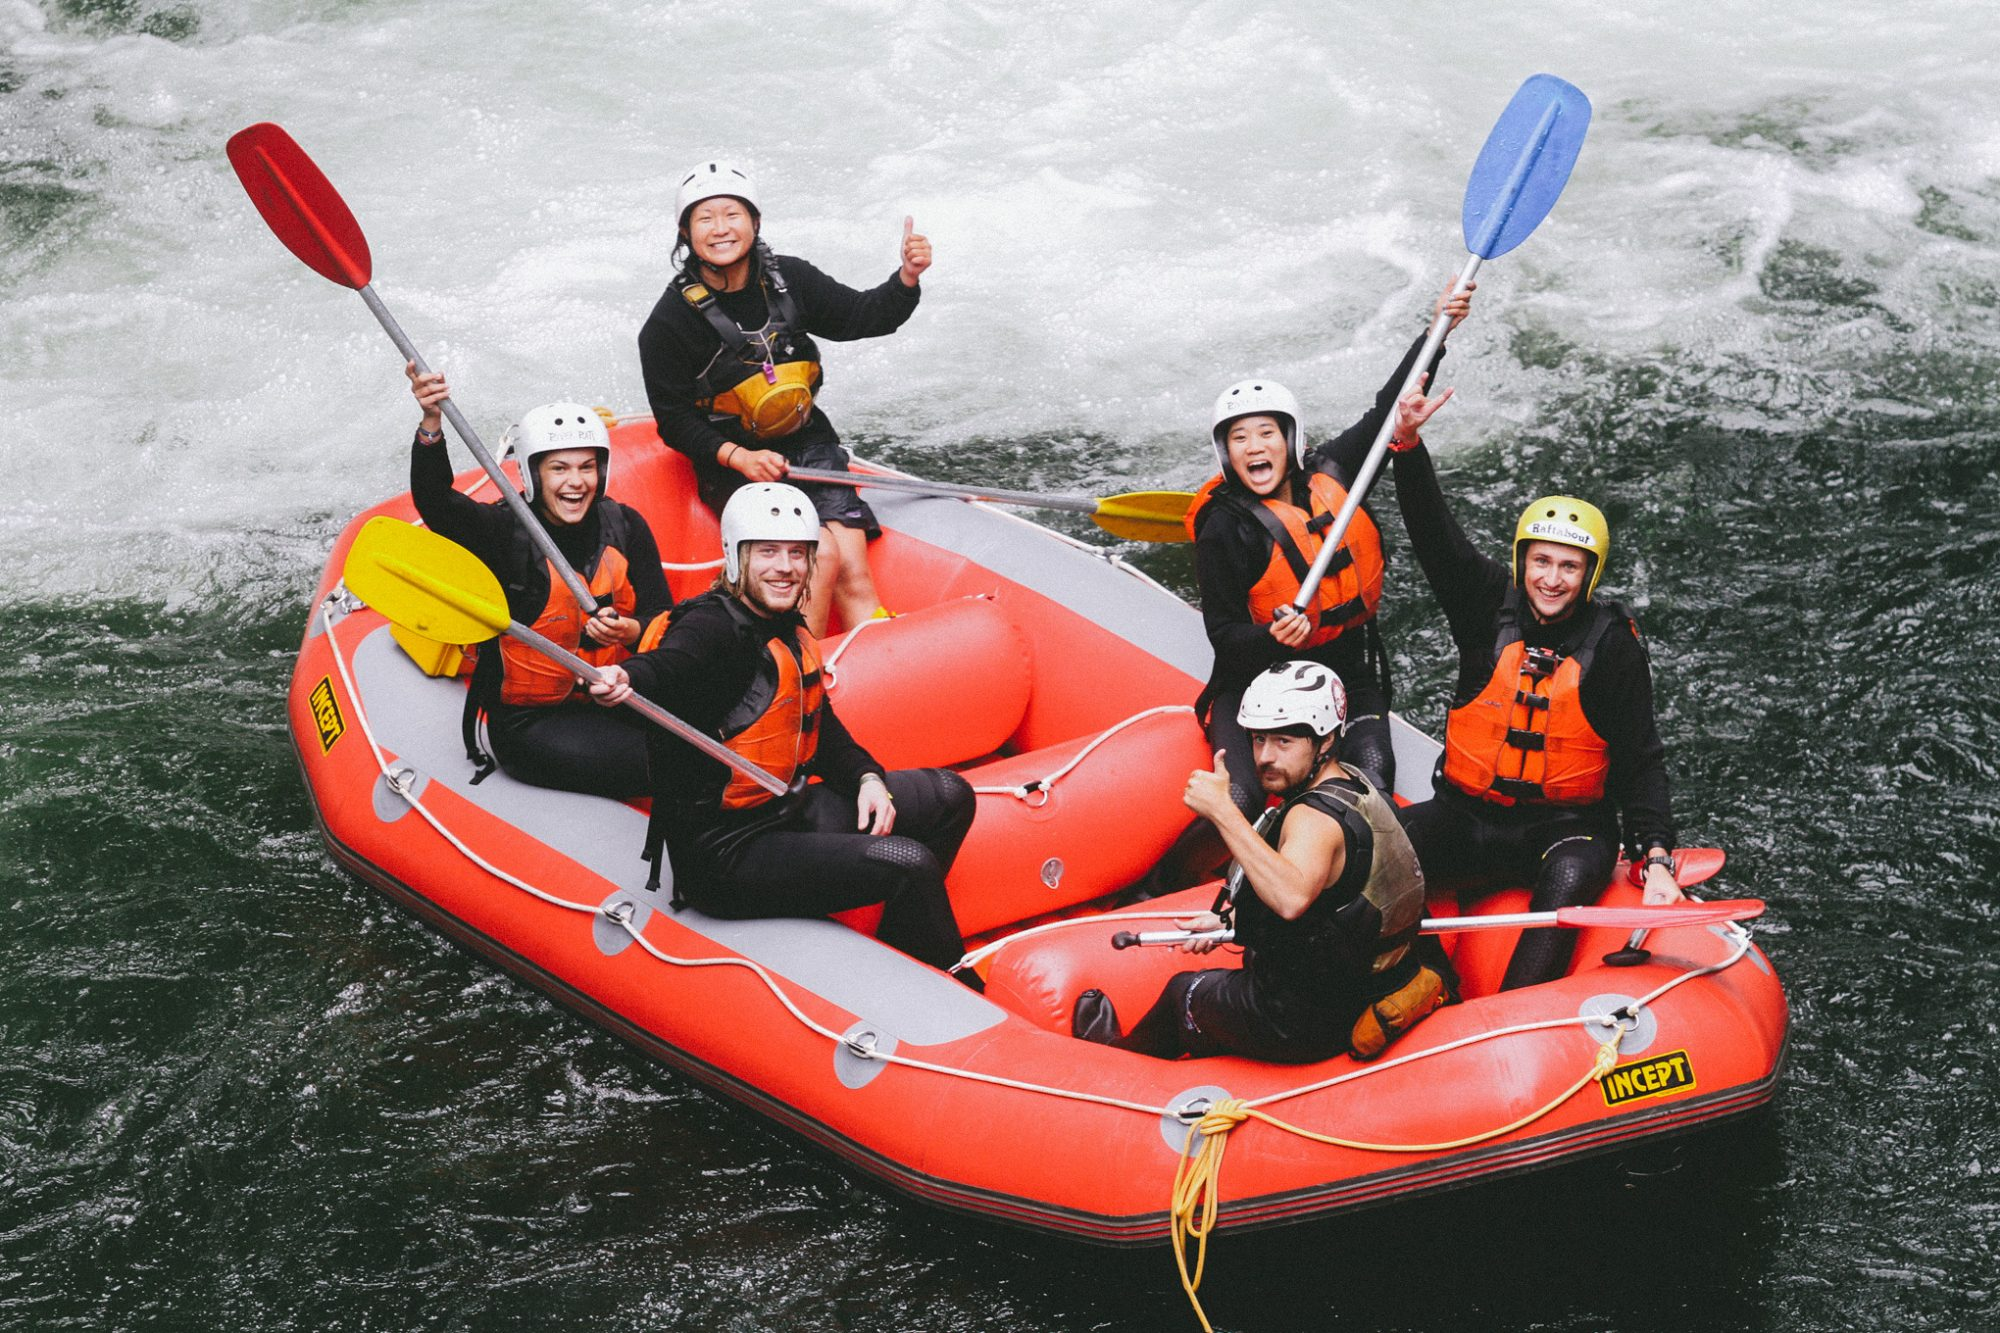 River Rats Rafting - White water rafting North Island, New Zealand